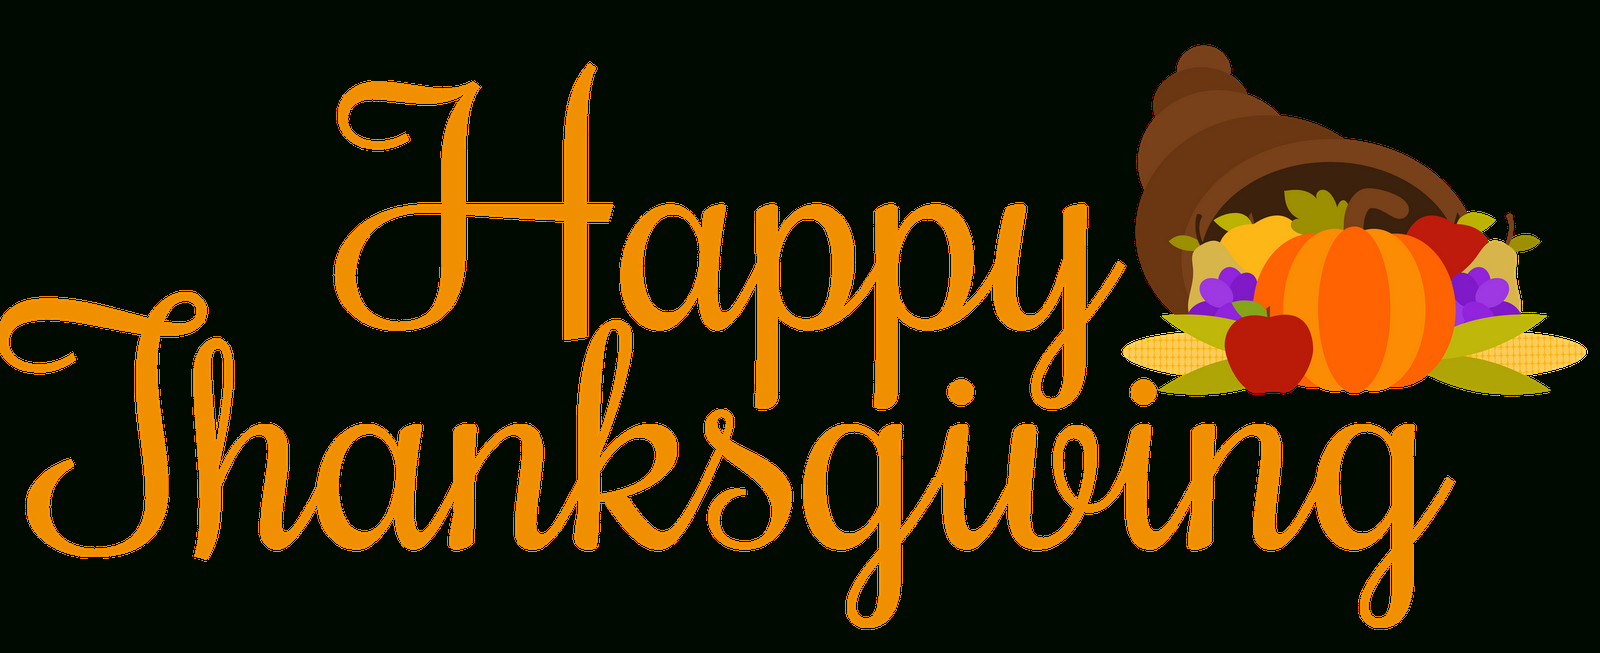 55+ Funny* Happy Thanksgiving Pictures For Facebook Covers Free - Free Printable Happy Thanksgiving Banner